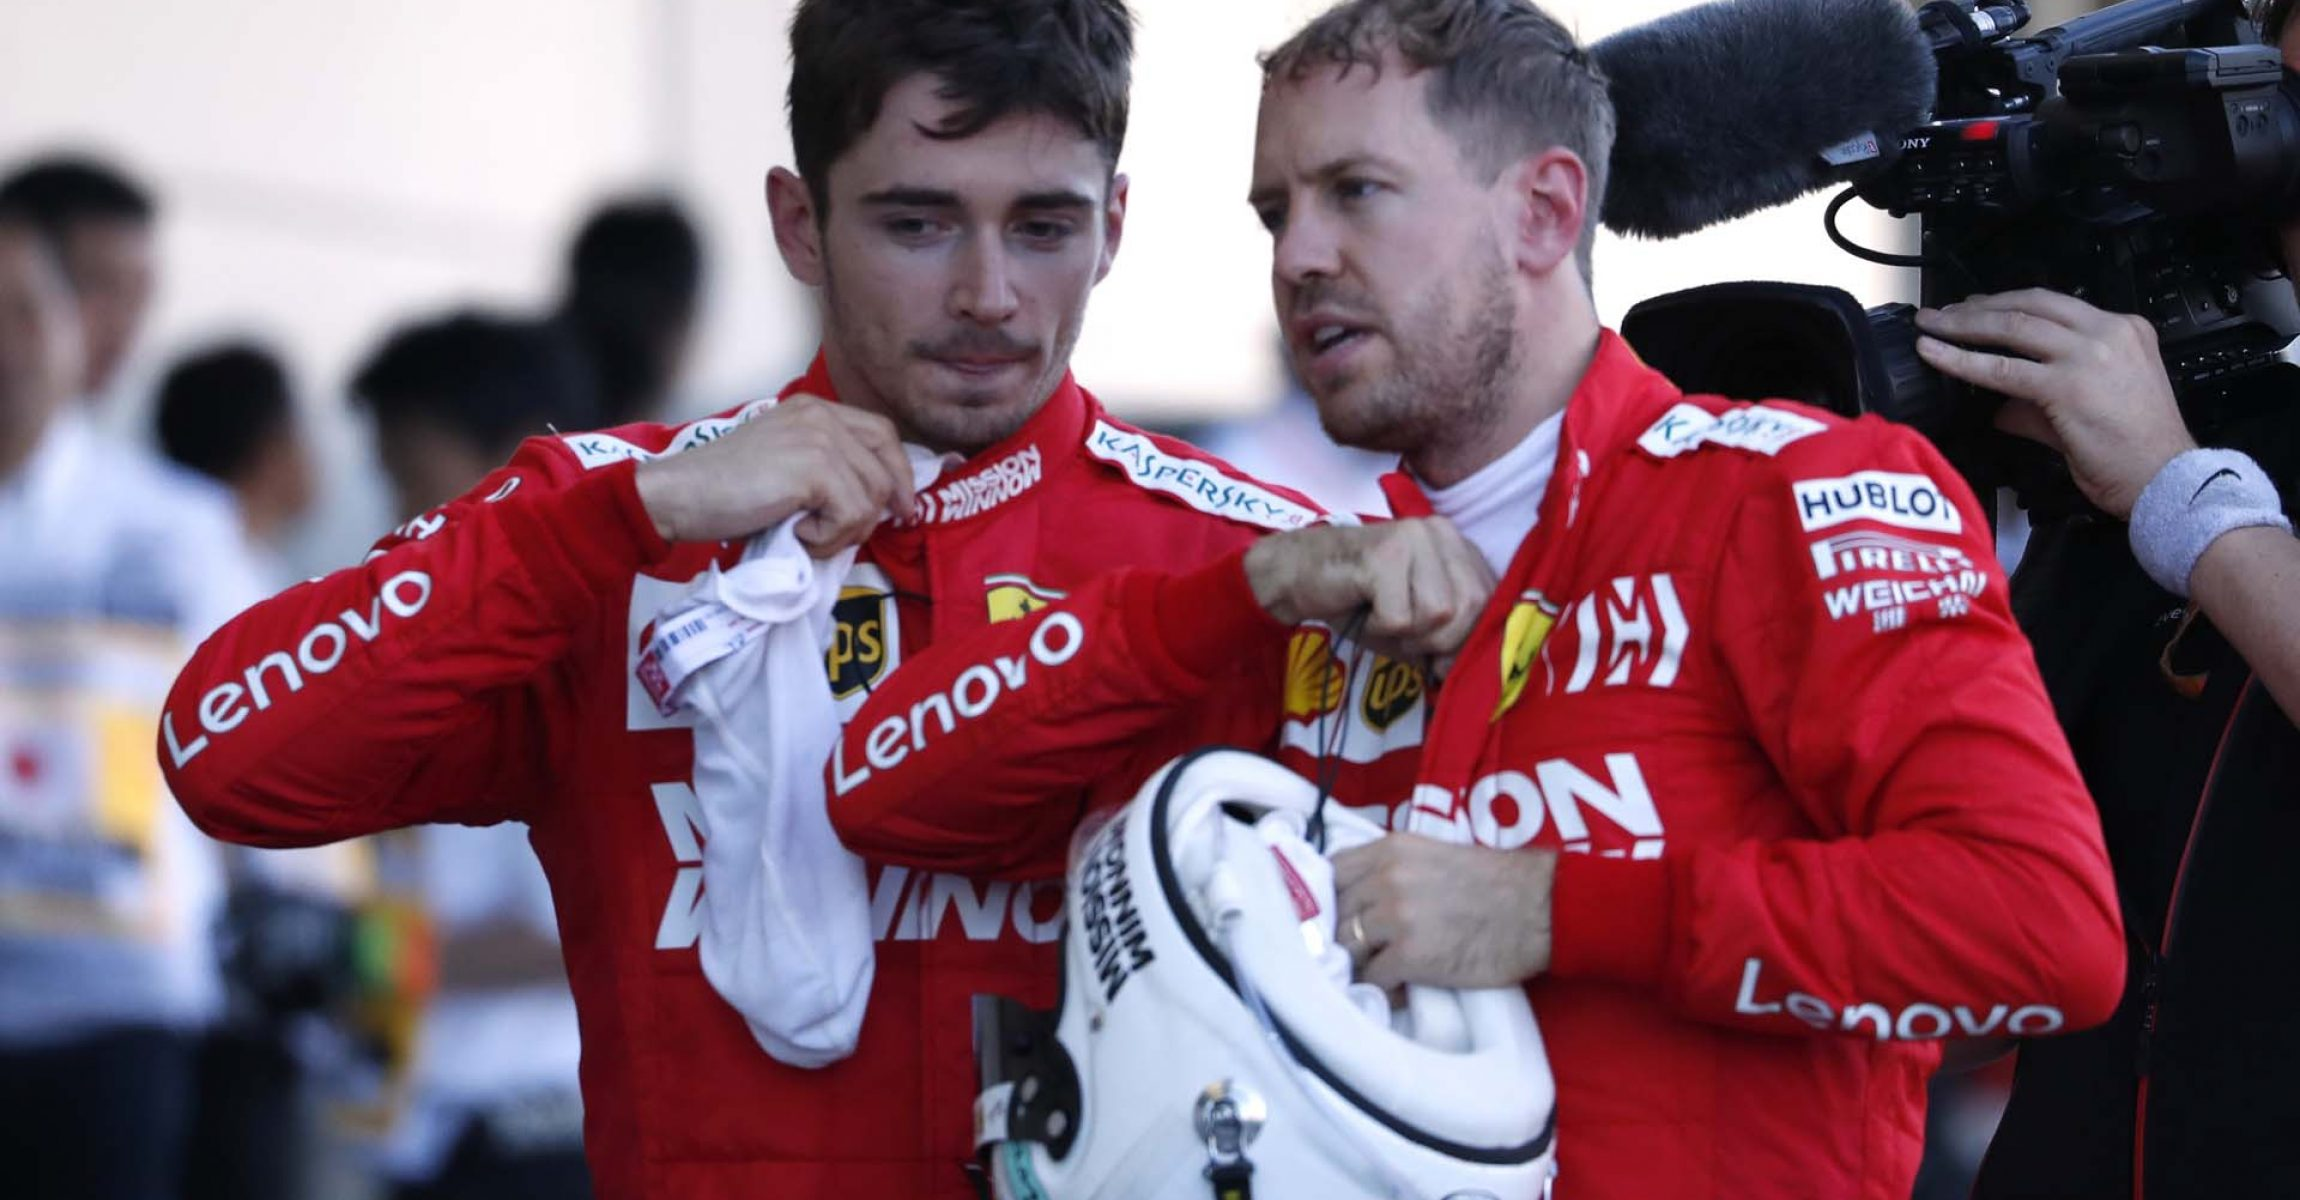 Formula One F1 - Japanese Grand Prix - Suzuka Circuit, Suzuka, Japan - October 13, 2019. Ferrari's Charles Leclerc and Sebastian Vettel after the race. REUTERS/Issei Kato